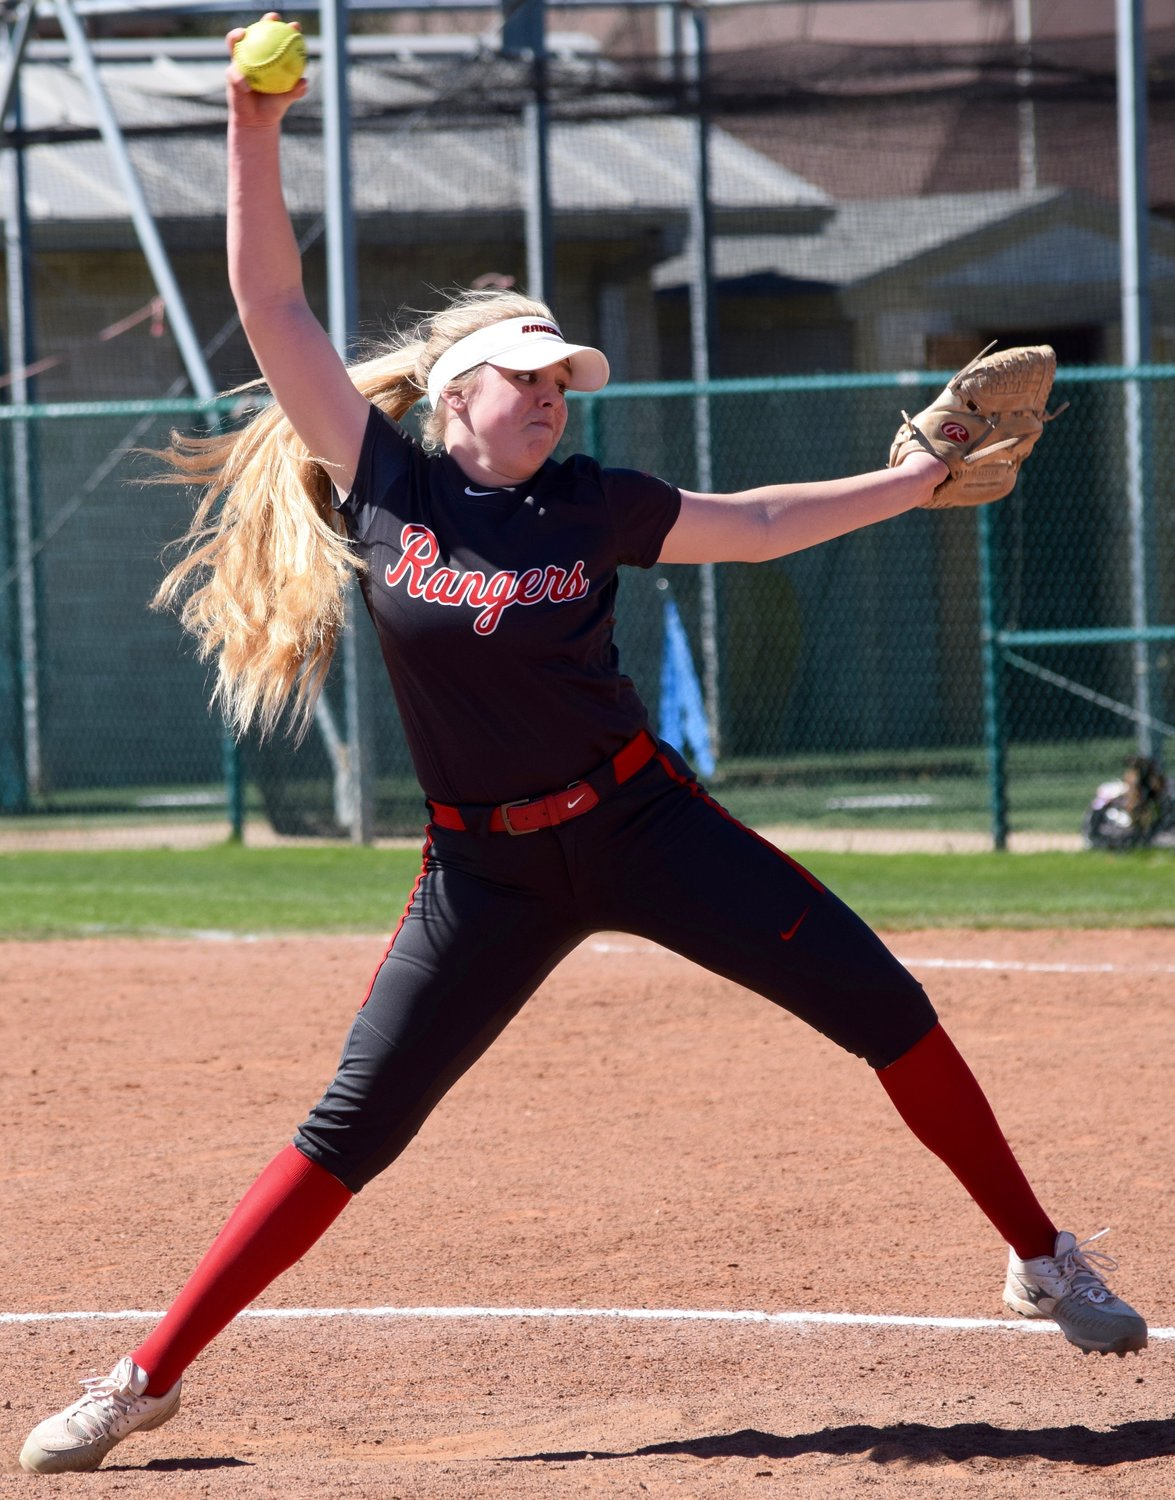 Chloe Smith and Vista Ridge lost to Cedar Ridge 9-2 on Saturday afternoon.